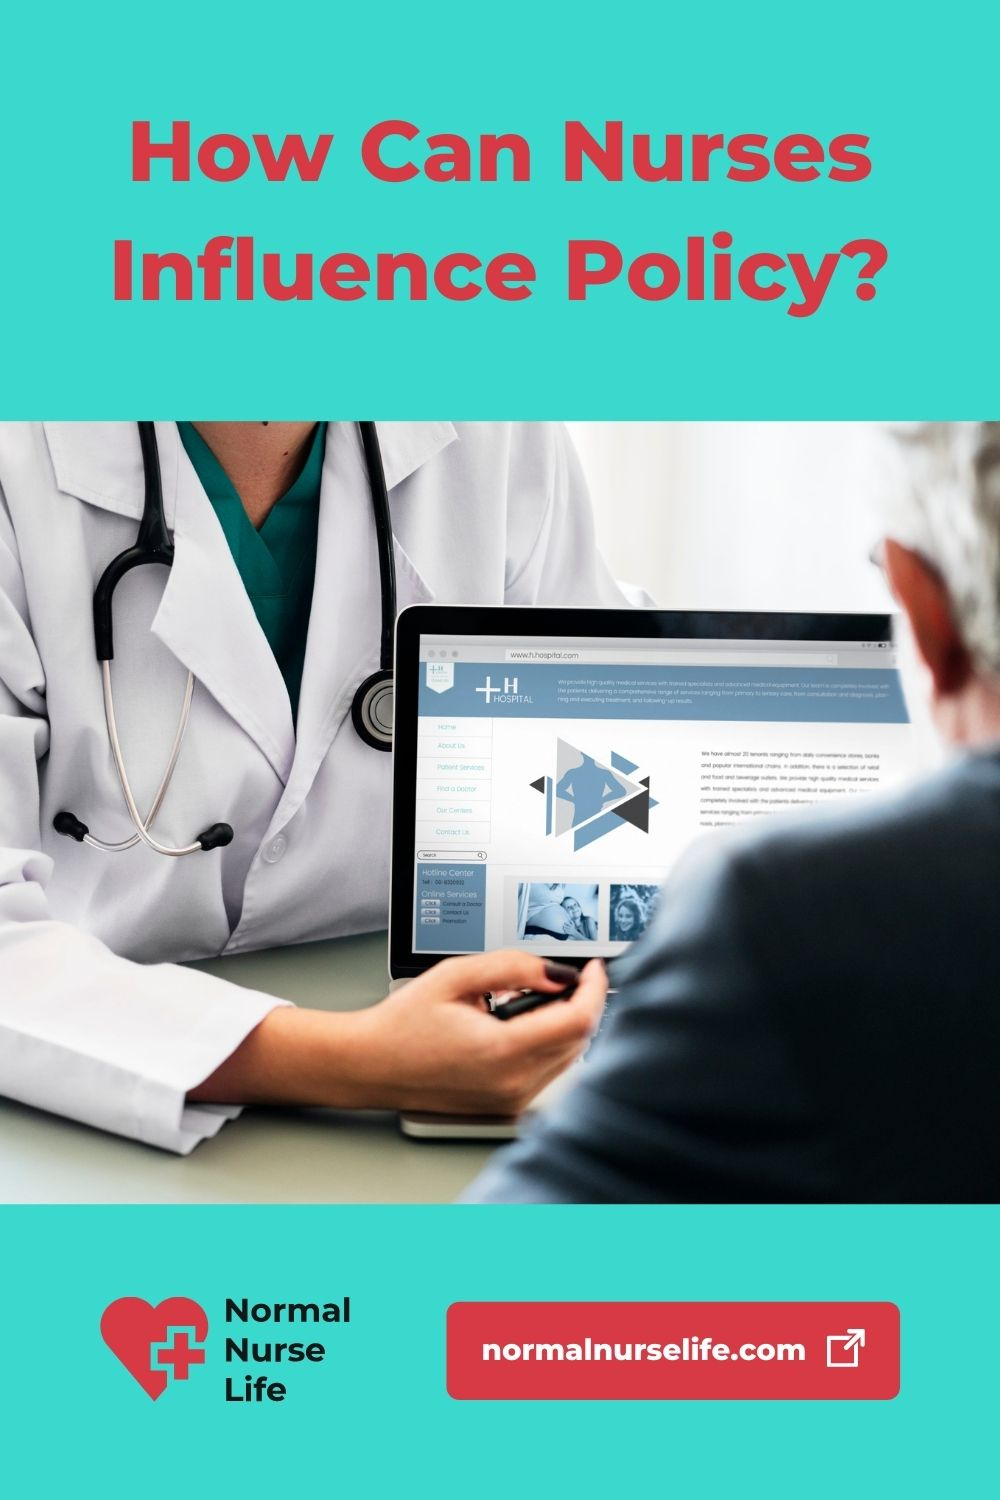 How can a nurse best influence policies in an organization